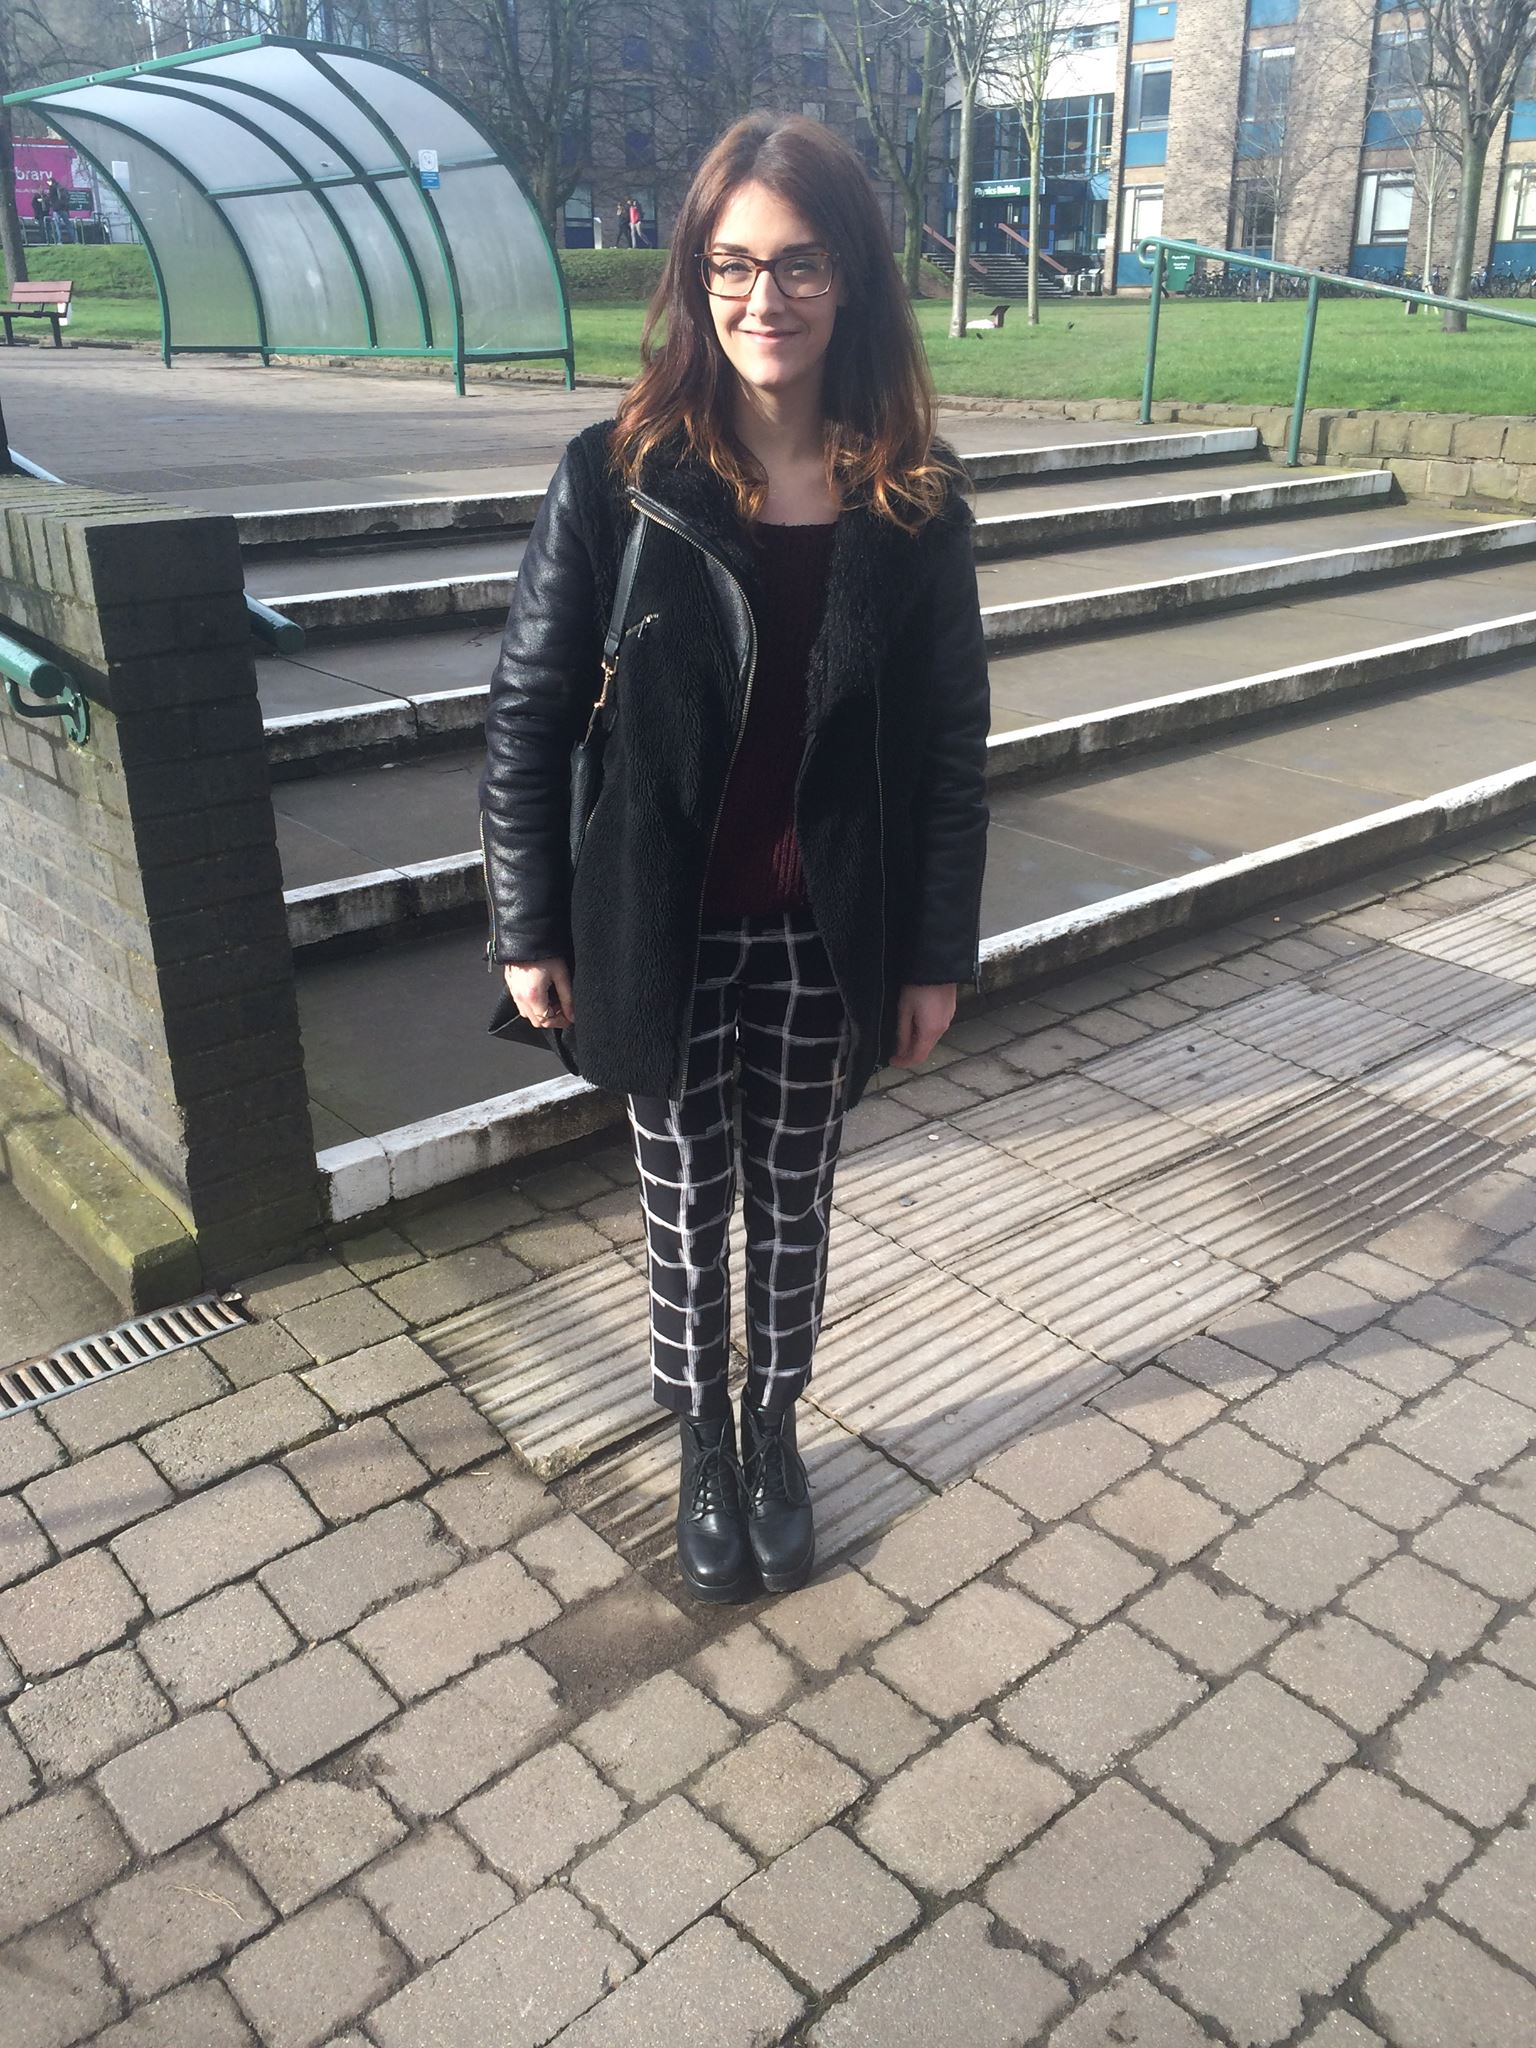 Lucy Hemsley, 2nd Year, Psychology.